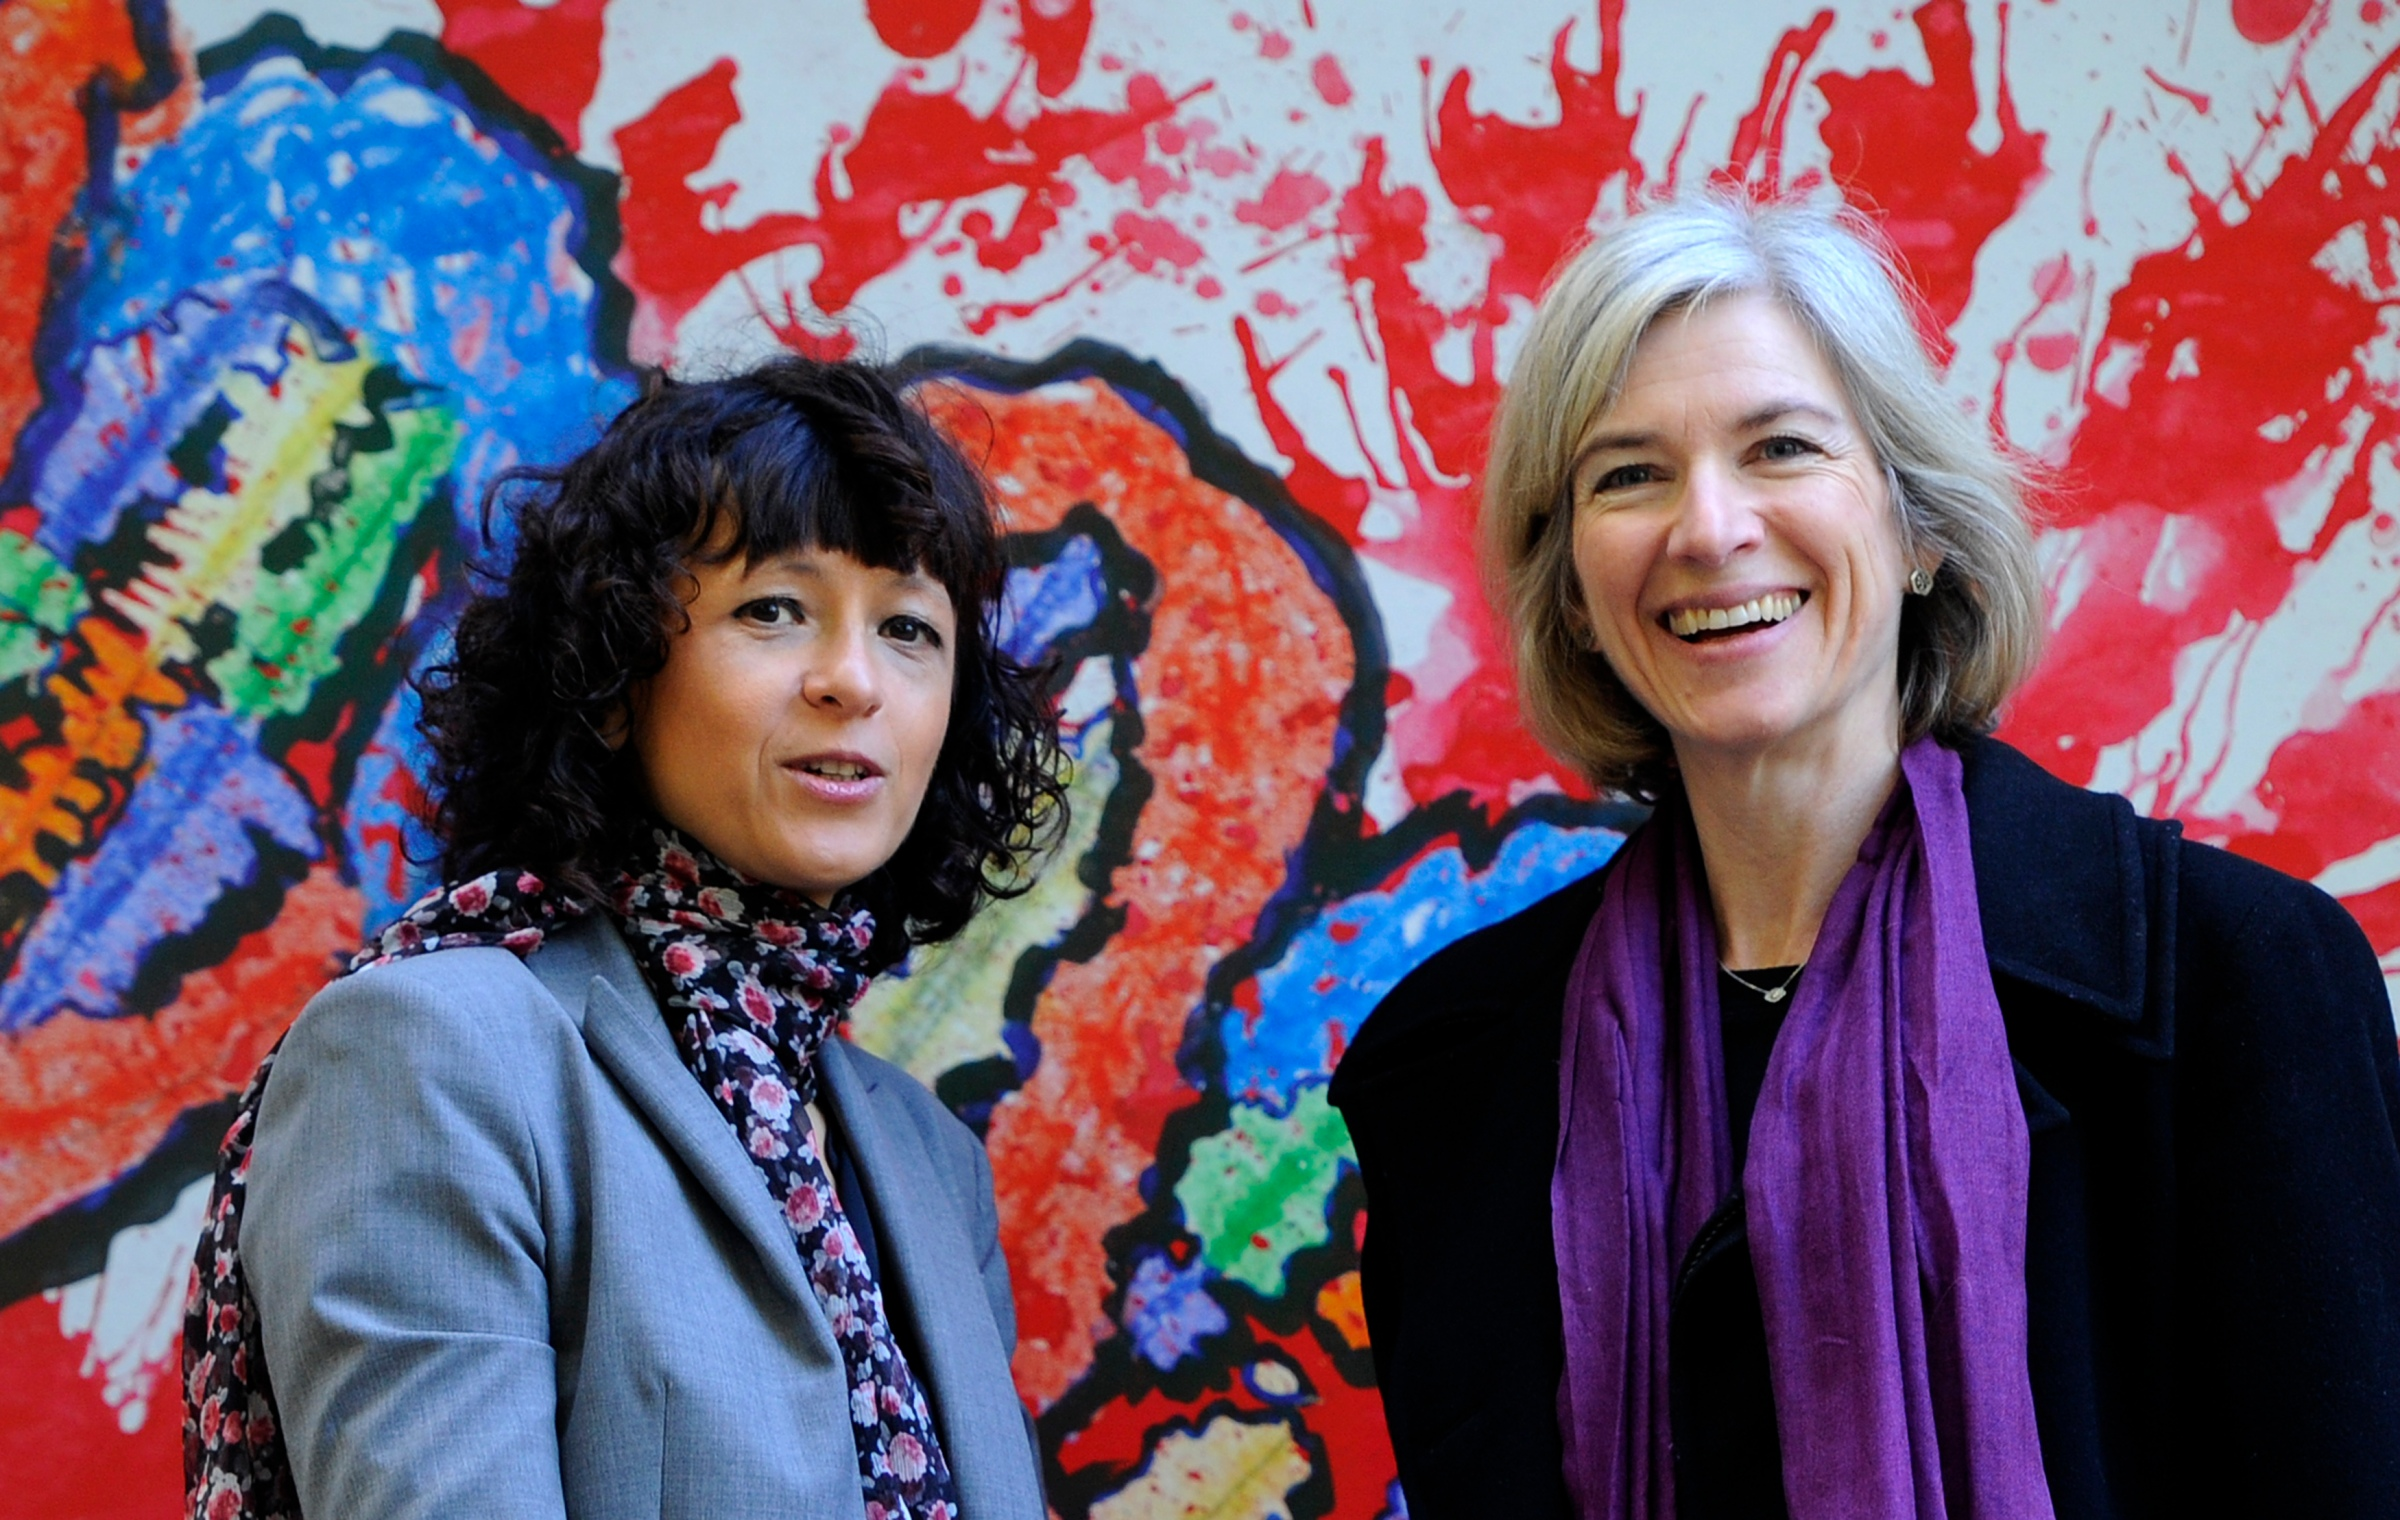 French researcher in Microbiology, Genetics and Biochemistry Emmanuelle Charpentier (L) and US professor of Chemistry and of Molecular and Cell Biology, Jennifer Doudna pose beside a painting made by children of the genome at the San Francisco park in Oviedo, on October 21, 2015.